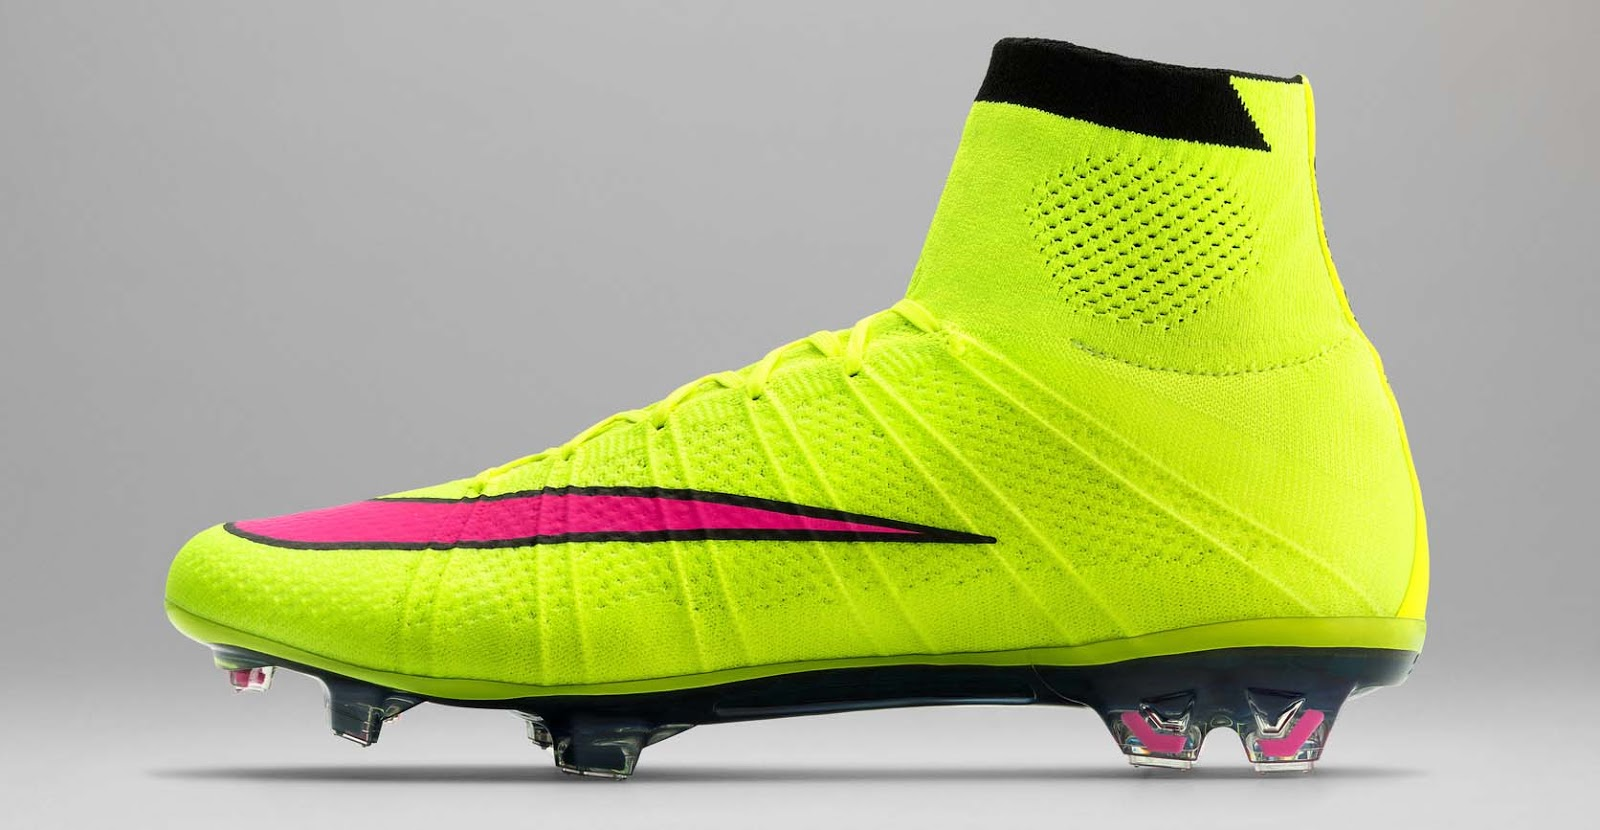 c4023f3c8a44 New Nike 2015 Football Boot Colorways - Nike Highlight Collection - Footy  Headlines